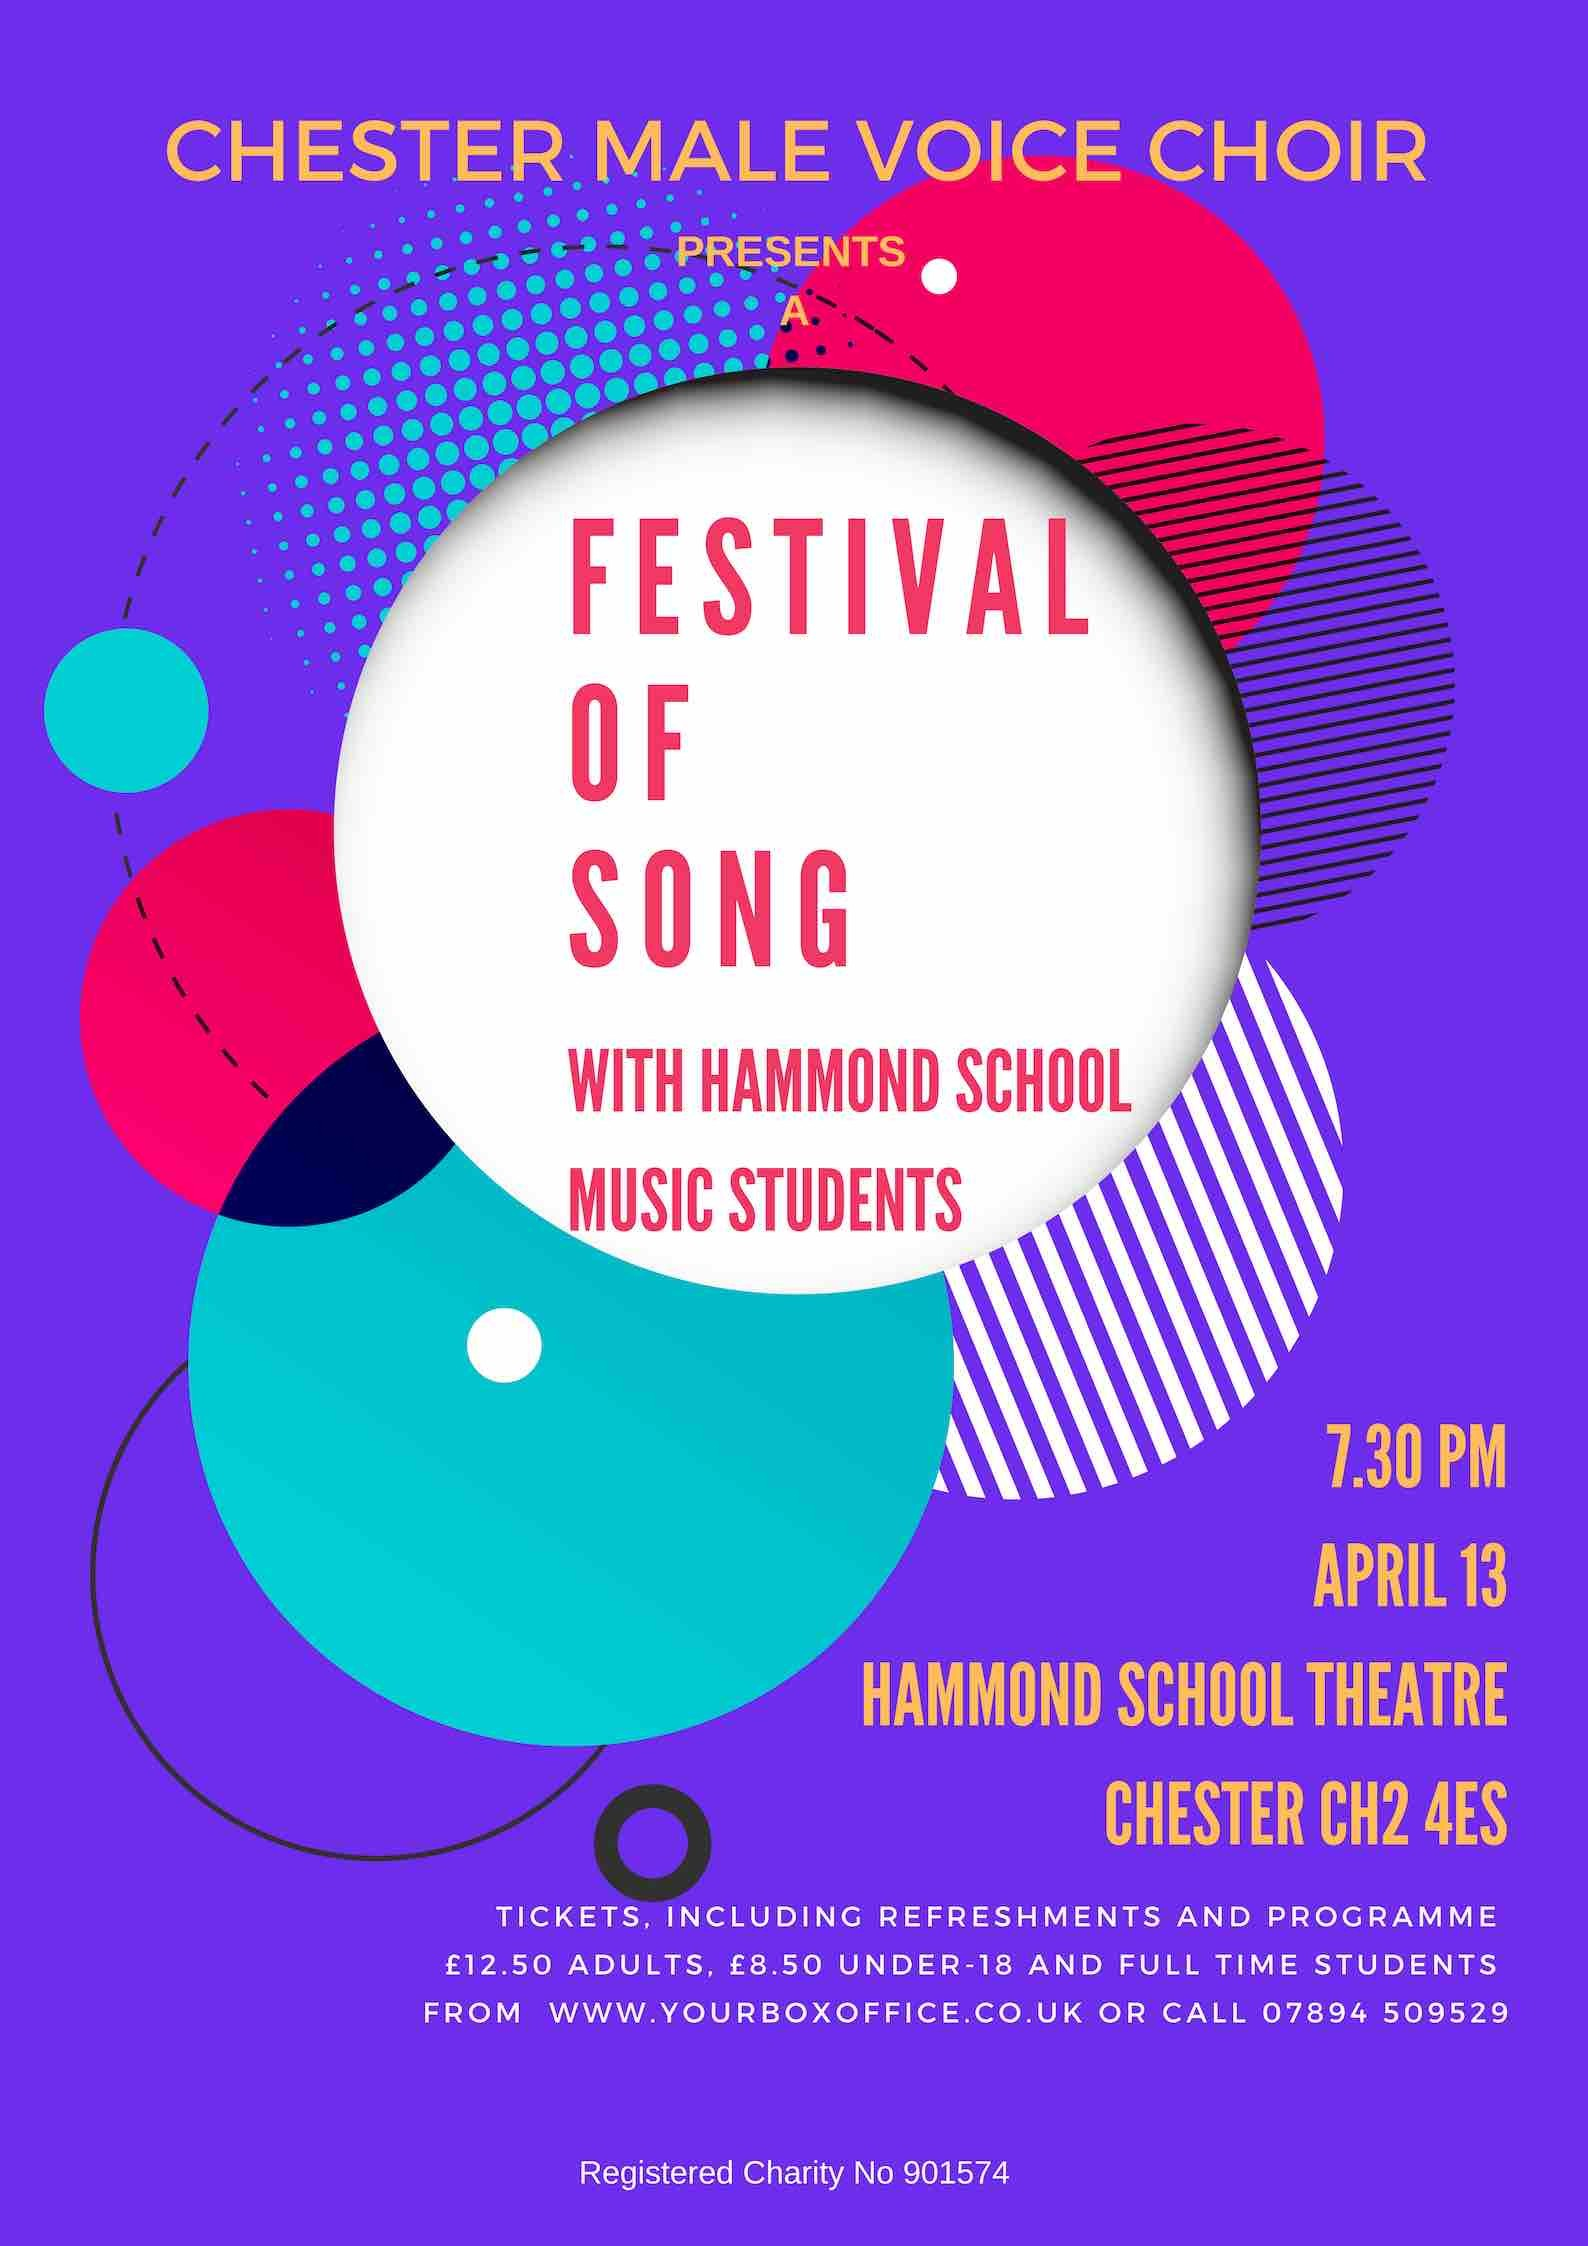 A Festival of Song